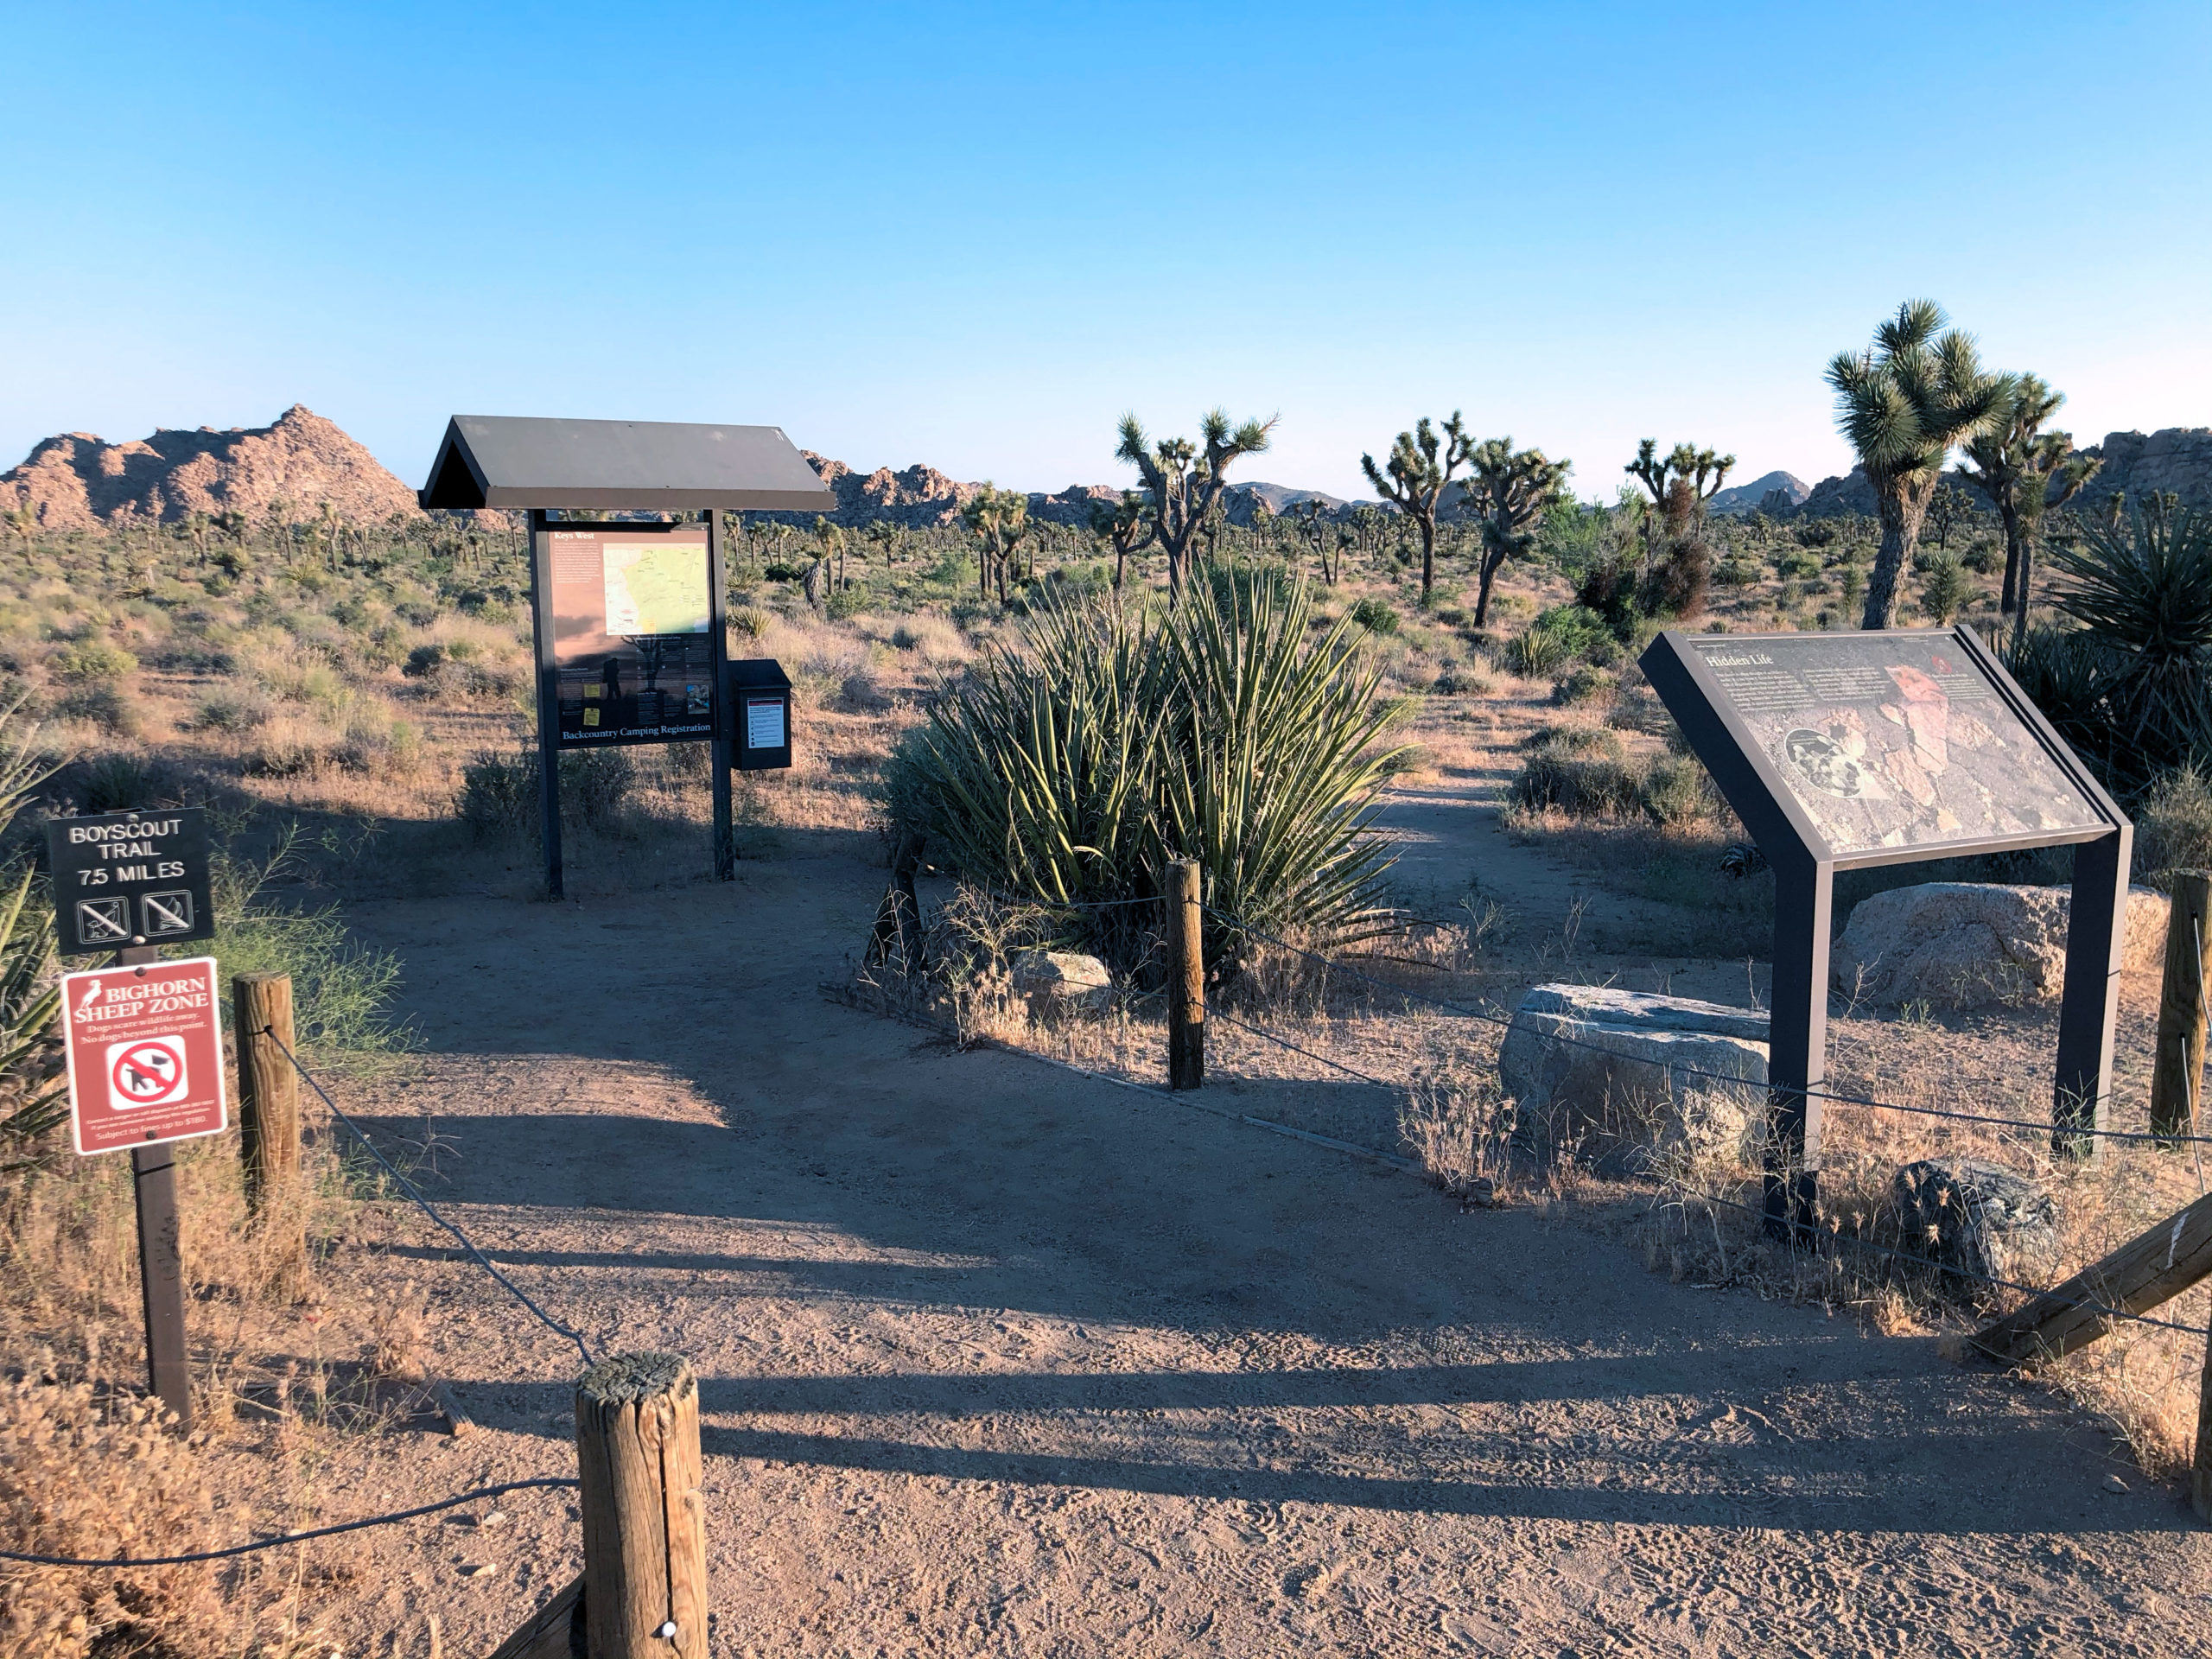 joshua-tree-national-park-climbing-camping-hiking-adventure-tour-boy-scout-trailhead-2